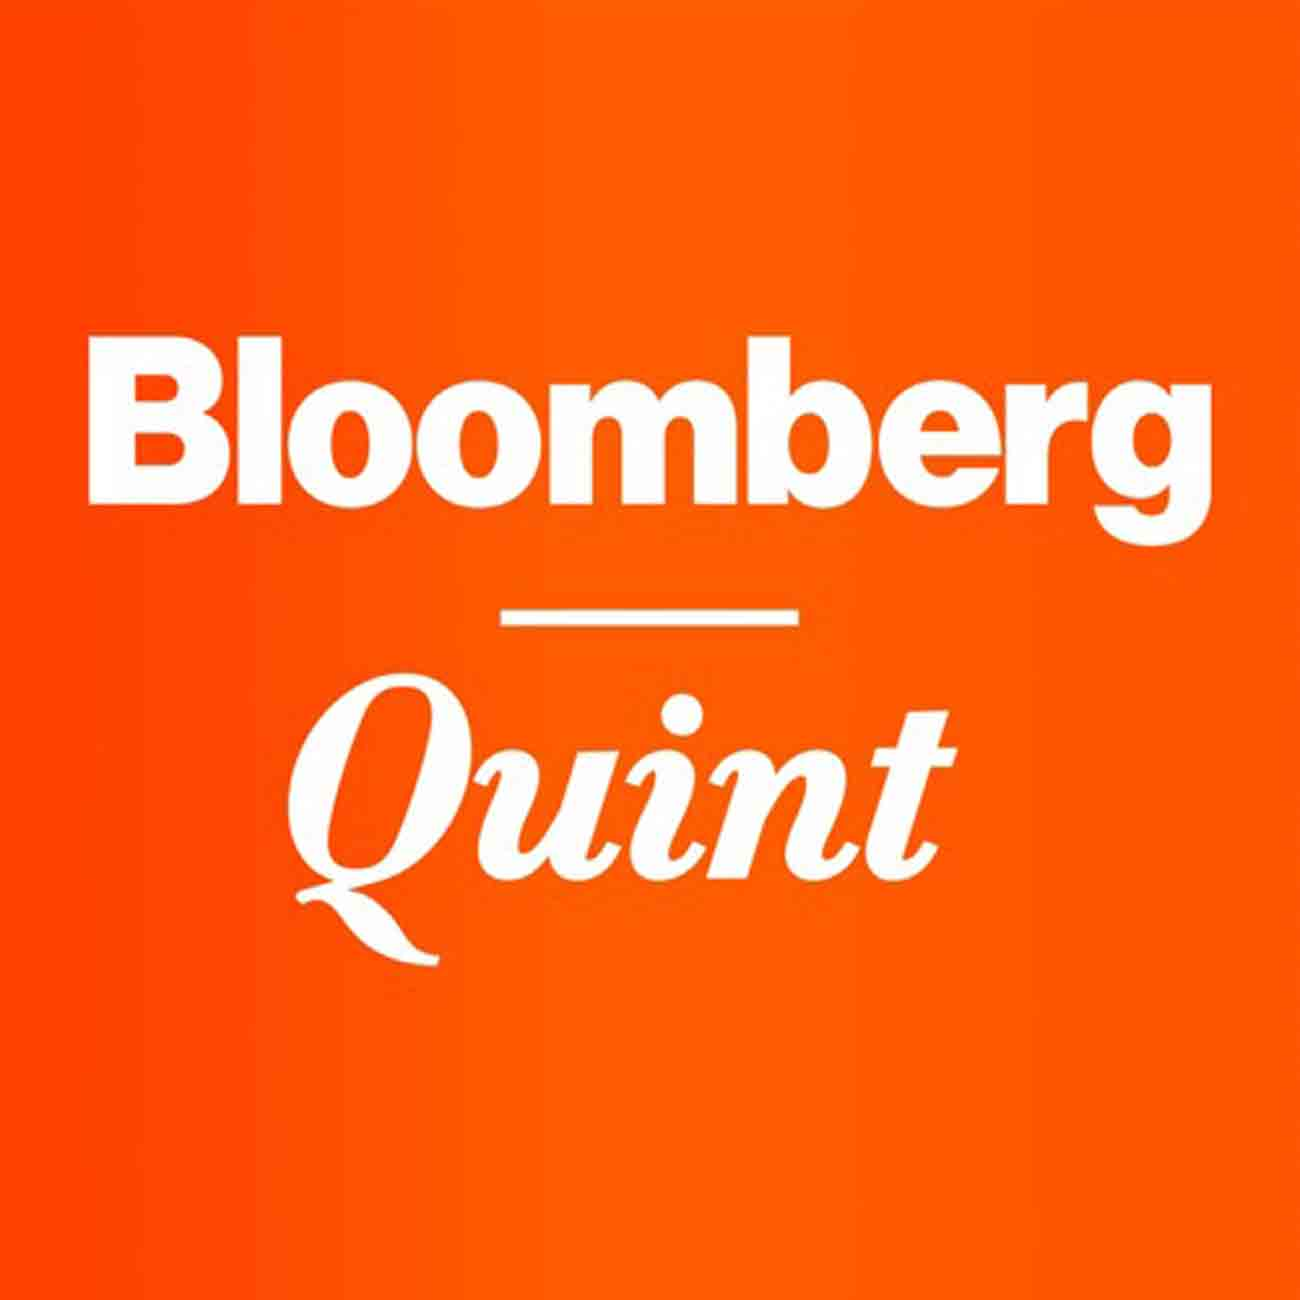 MIB rejects Horizon Satellite application for Bloomberg Quint license